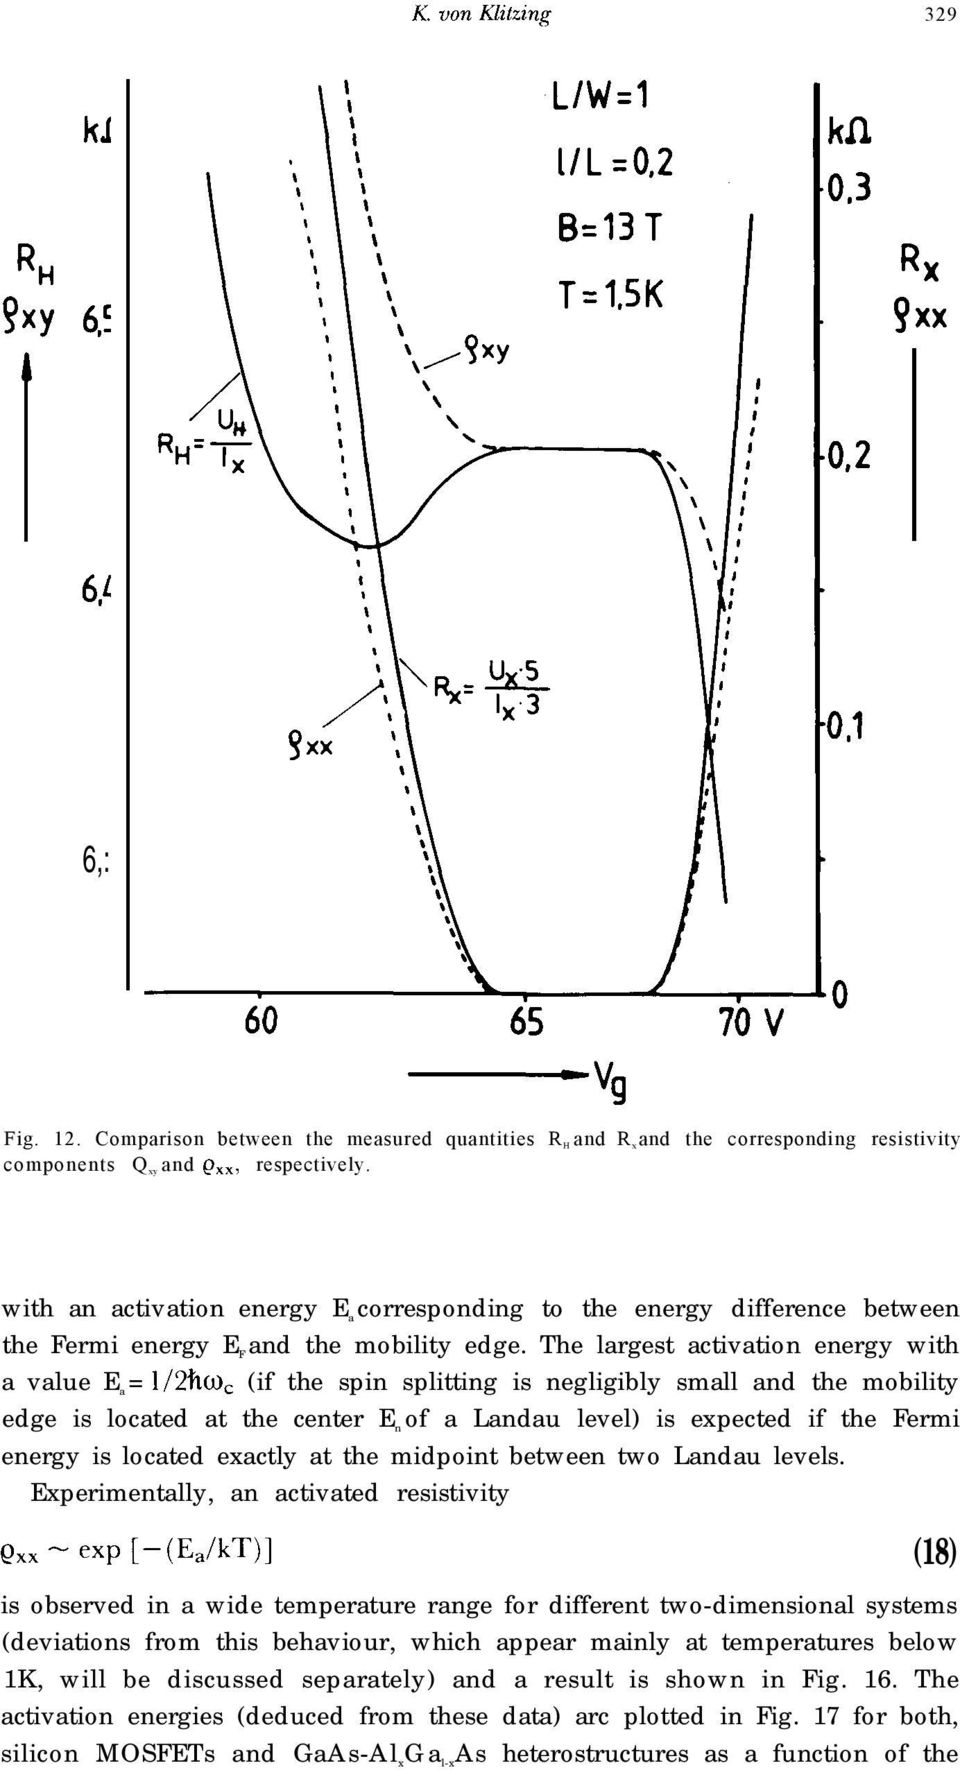 The largest activation energy with a value E a = 1/2h~, (if the spin splitting is negligibly small and the mobility edge is located at the center E n of a Landau level) is expected if the Fermi